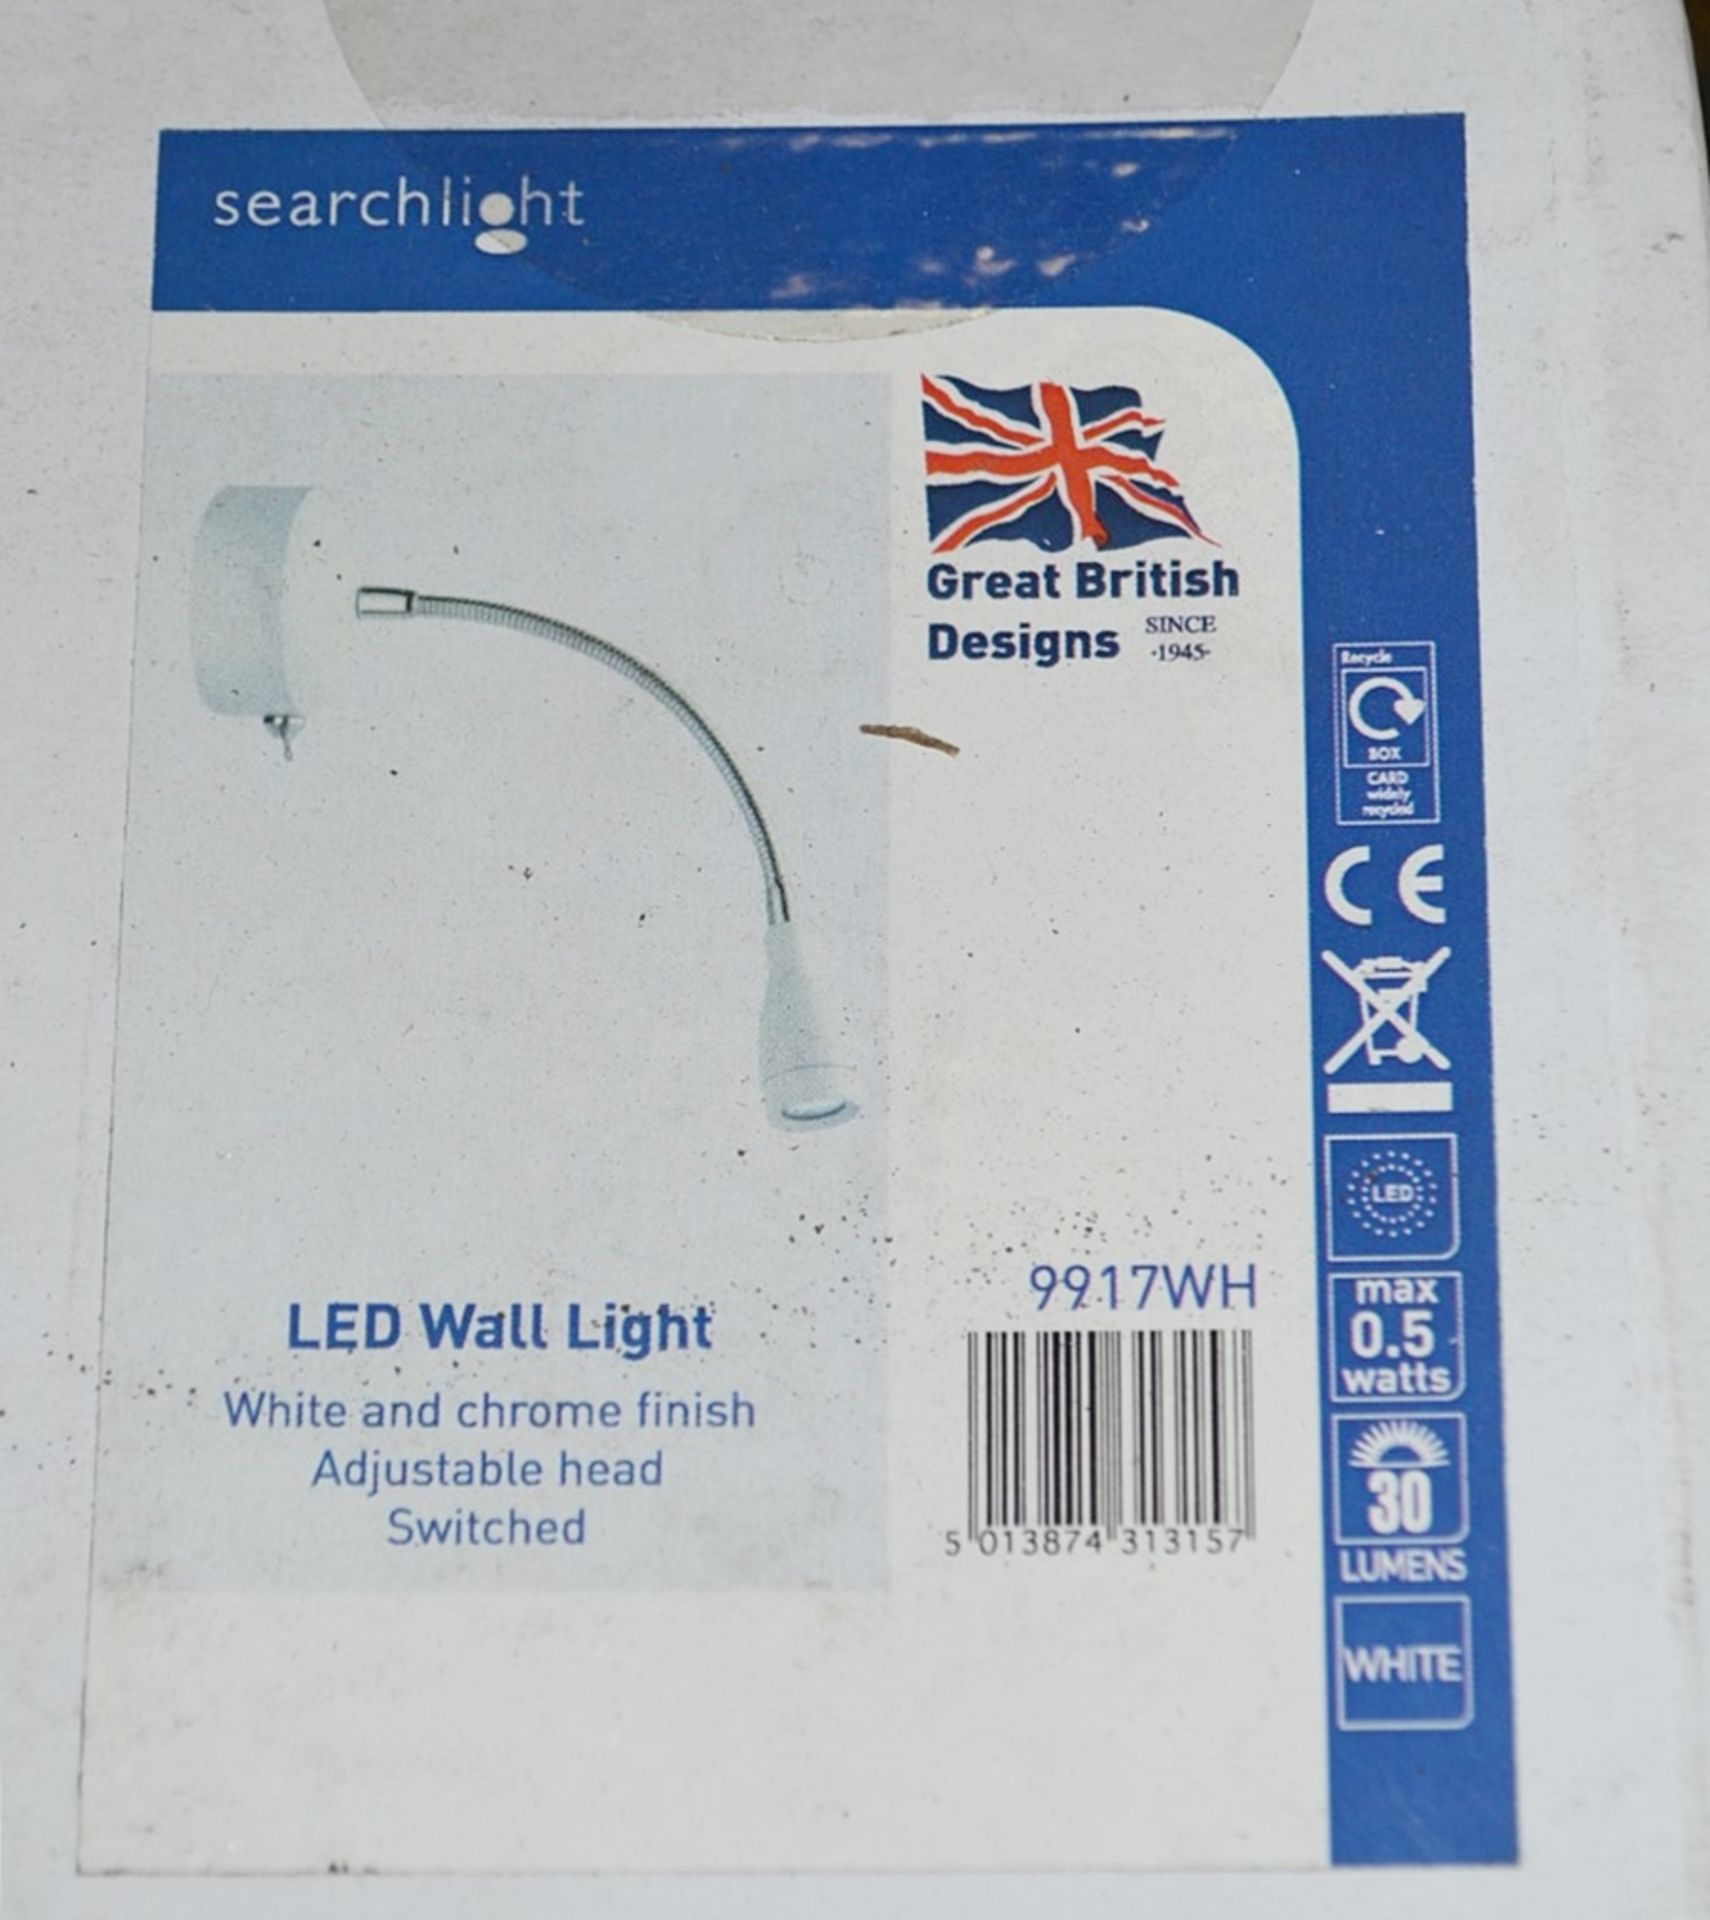 Lot 9078 - 5 x Searchlight LED Wall Lights Finished In White and Chrome - Brand New and Boxed - 9917WH - Ref: J